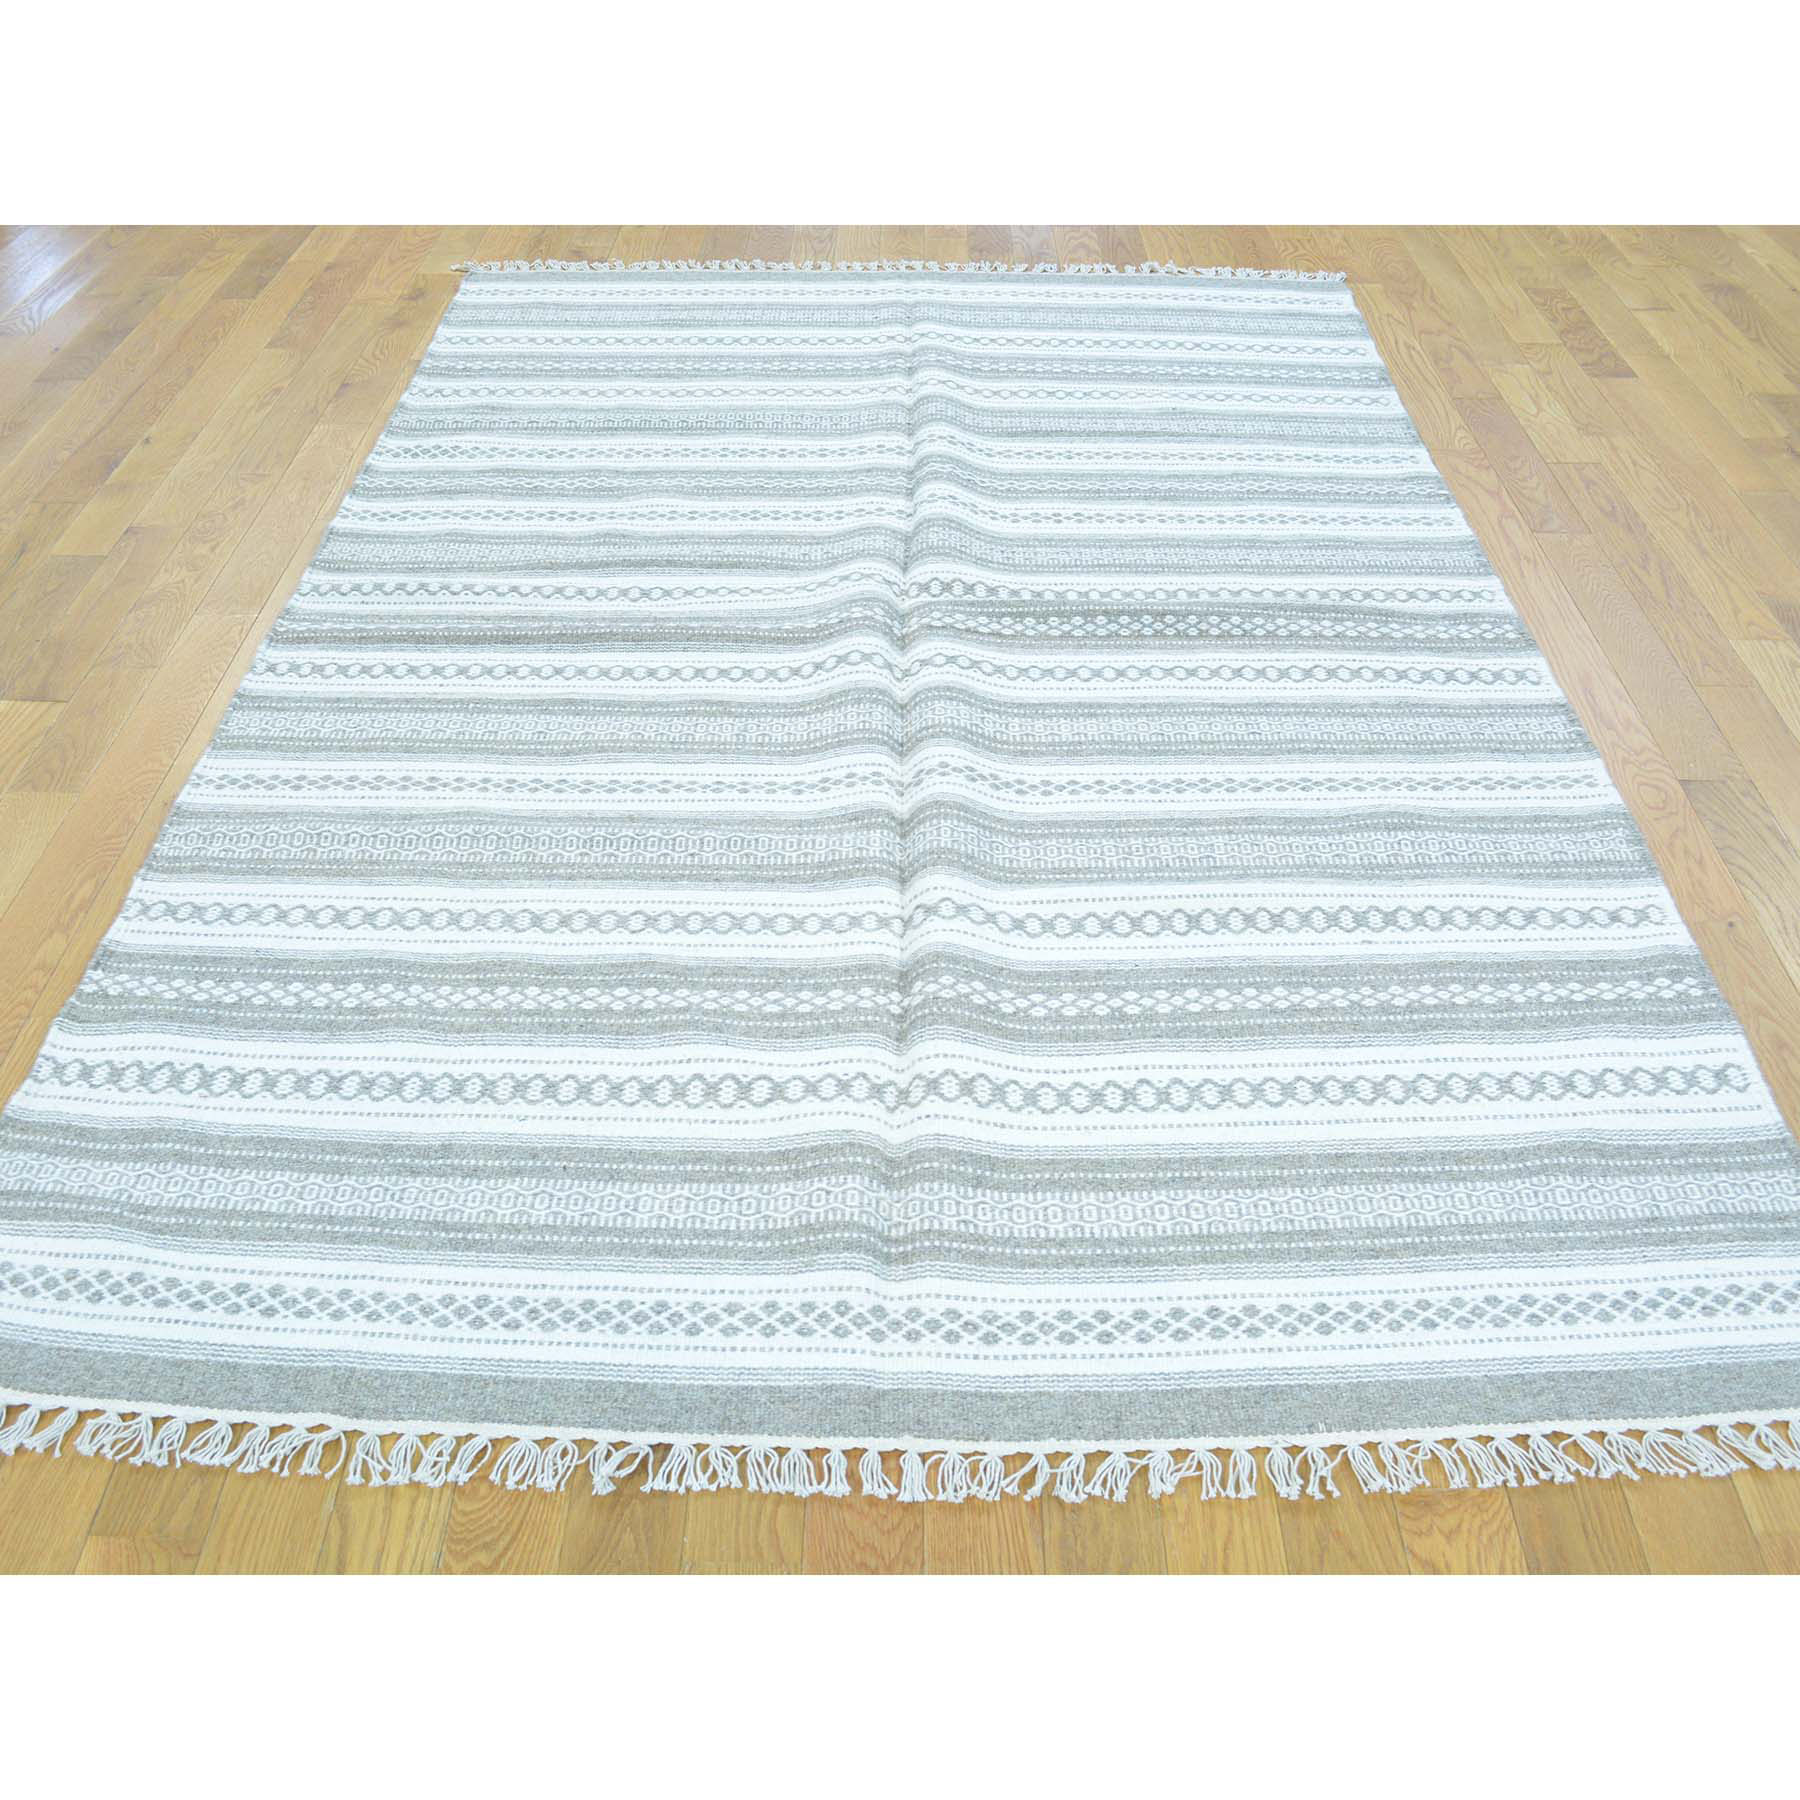 5-2 x8-4  Flat Weave Hand Woven Striped Durie Kilim Pure Wool Rug